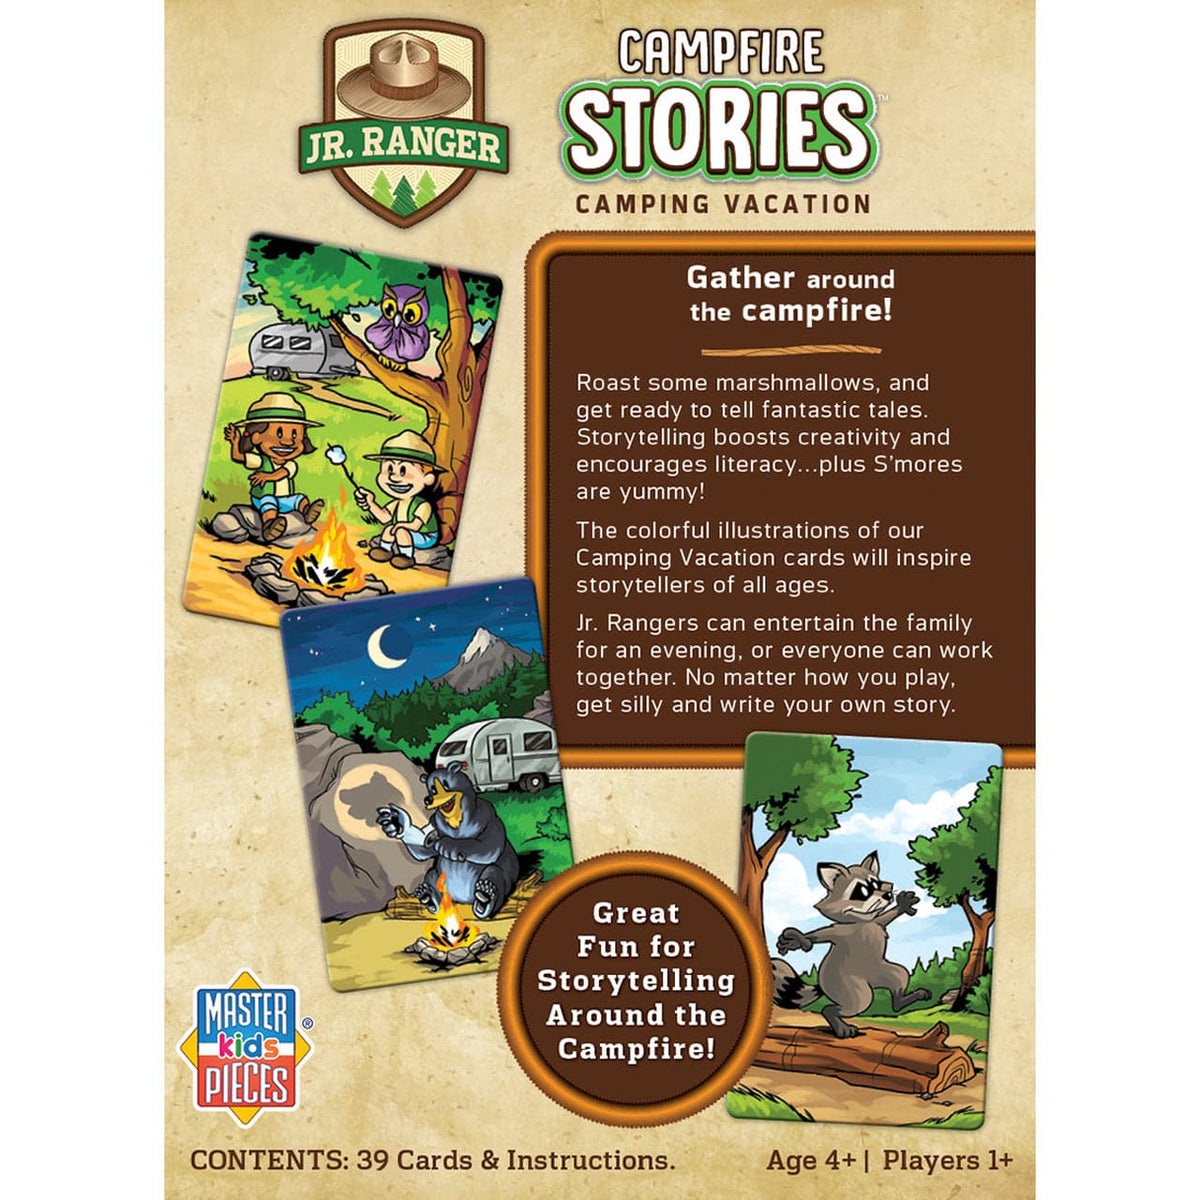 Jr. Ranger Campfire Stories Game